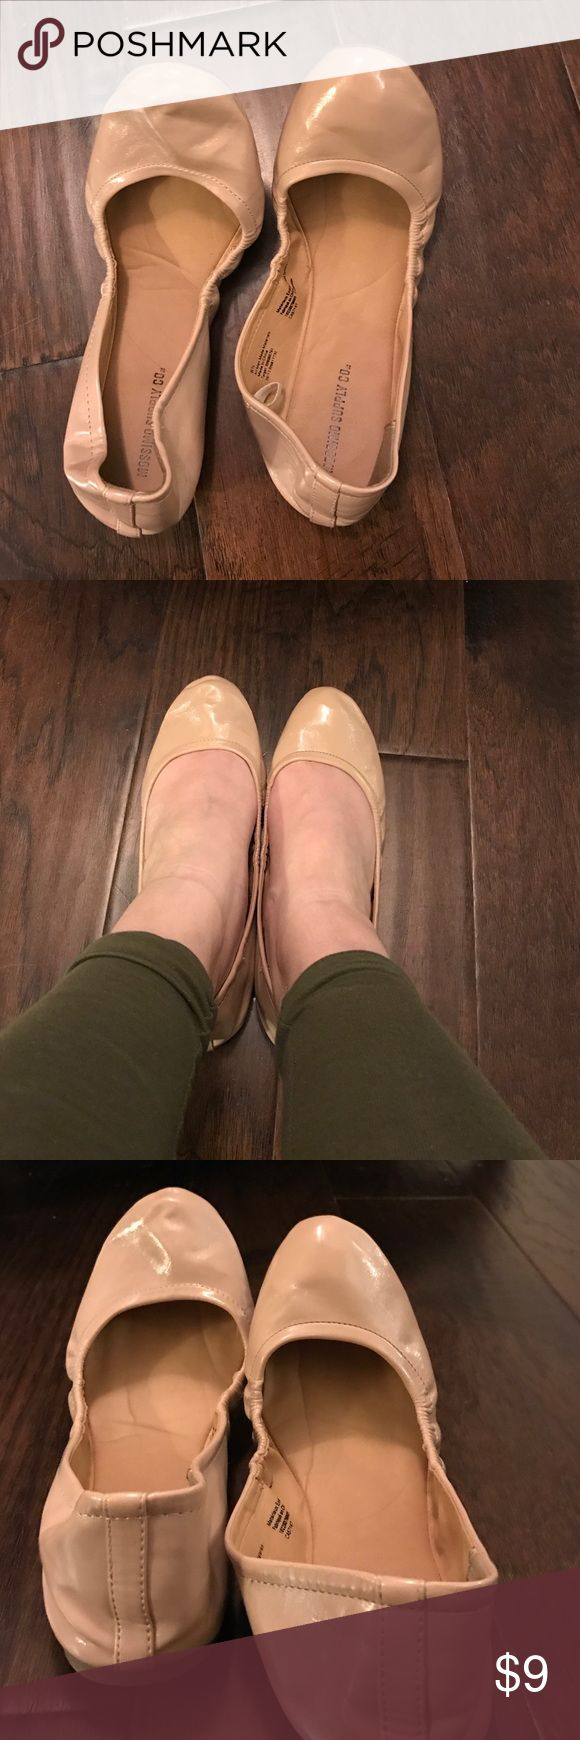 Price Drop! Mossimo Cream Ballet Flats Women's Mossimo cream flats. In great condition. No scuffs or marks. Mossimo Supply Co. Shoes Flats & Loafers